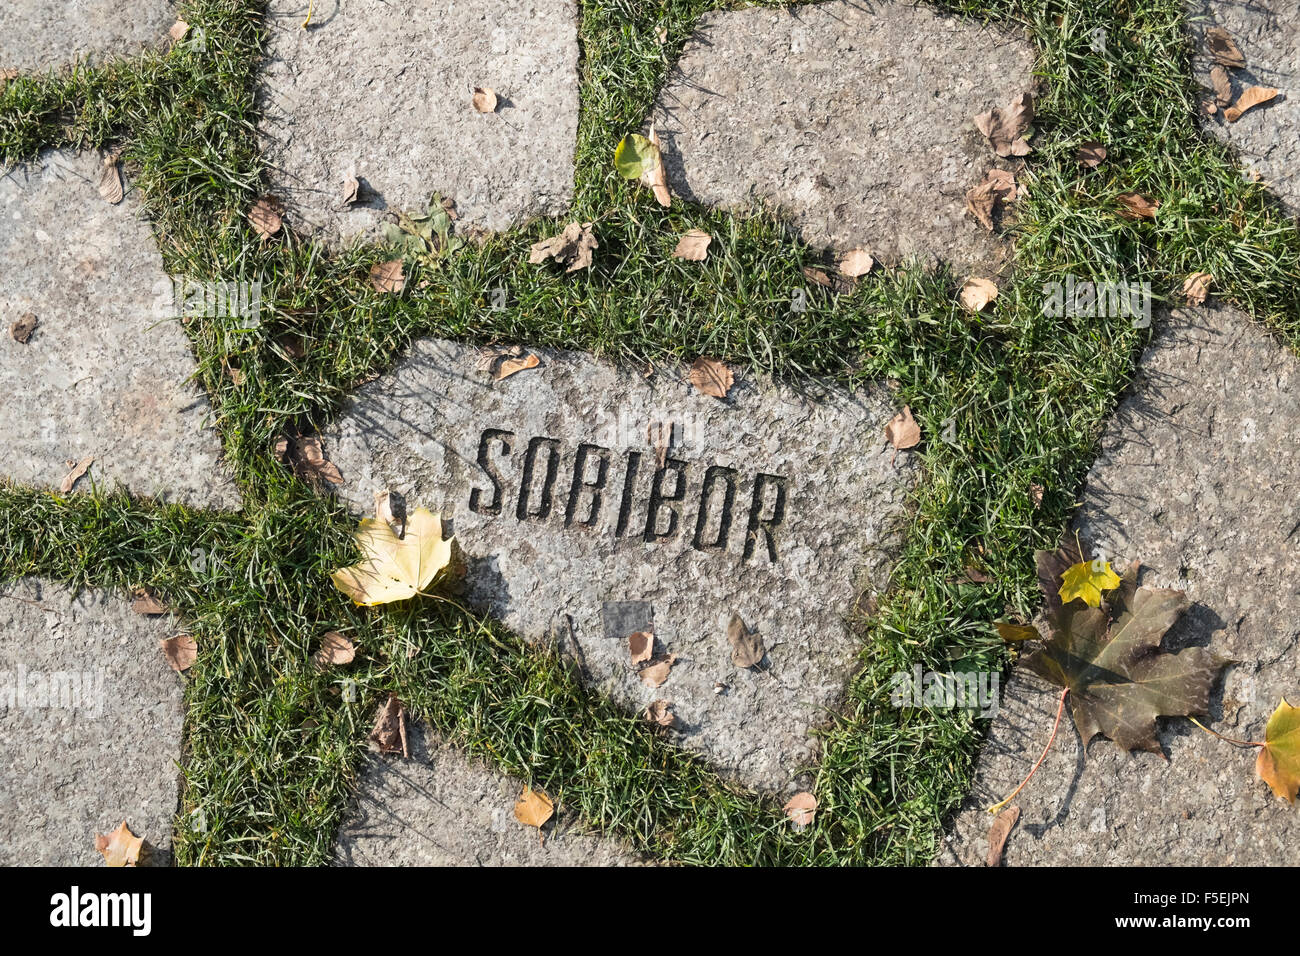 Stone with Sobibor name at Memorial to Murdered Sinti and Roma People, Mitte, Berlin, Germany Stock Photo